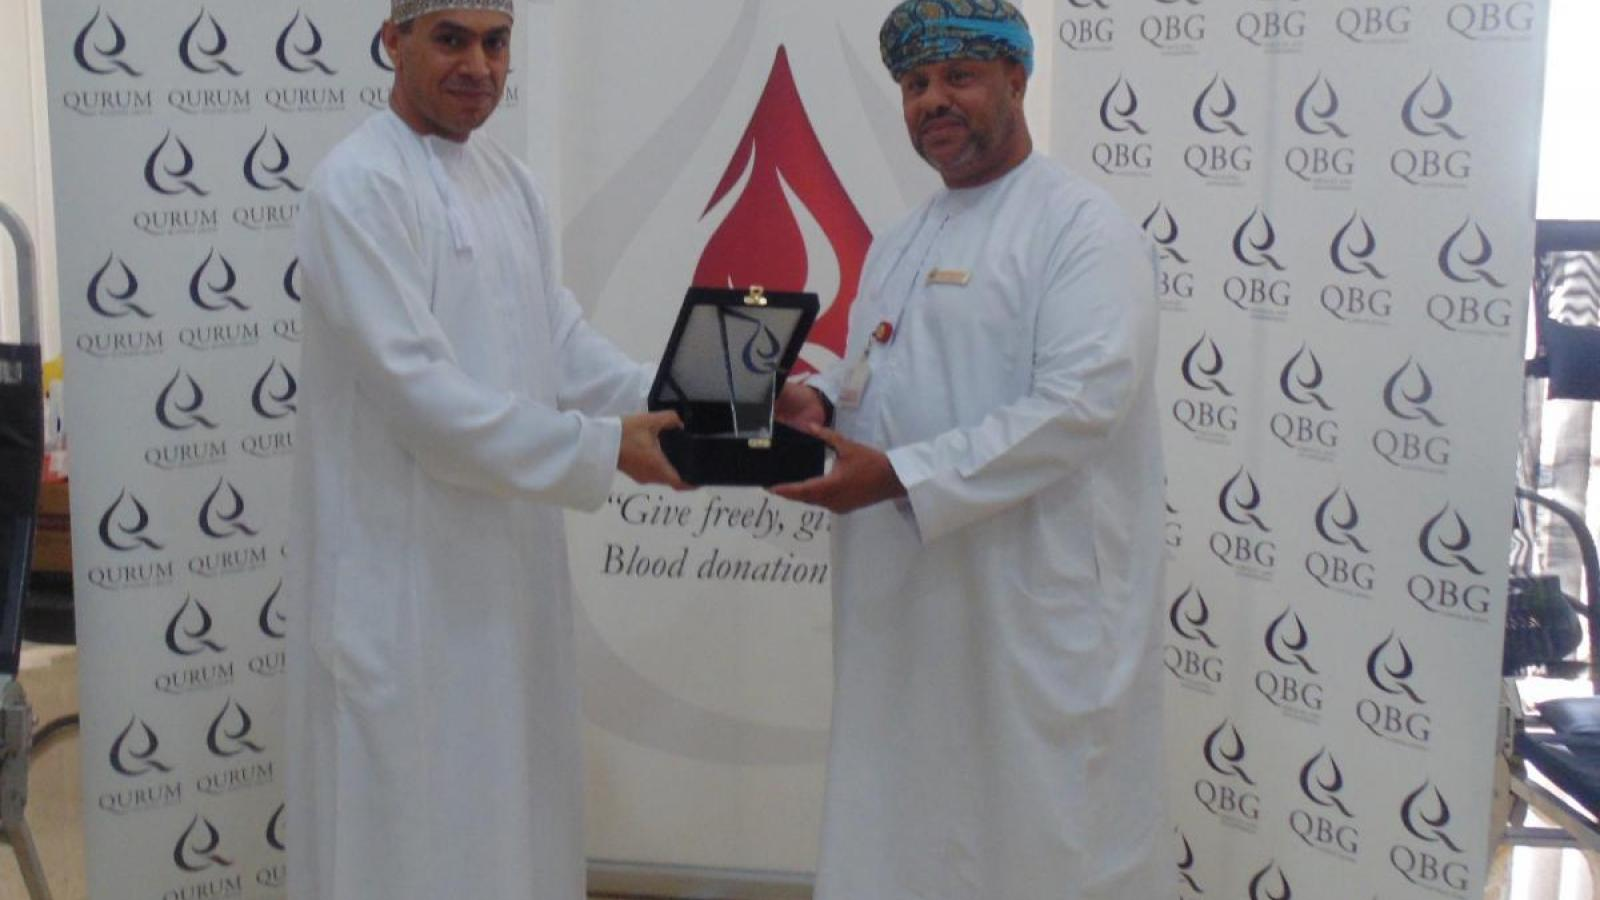 QBG Employees 'Give Freely' For World Blood Donor Day 2015